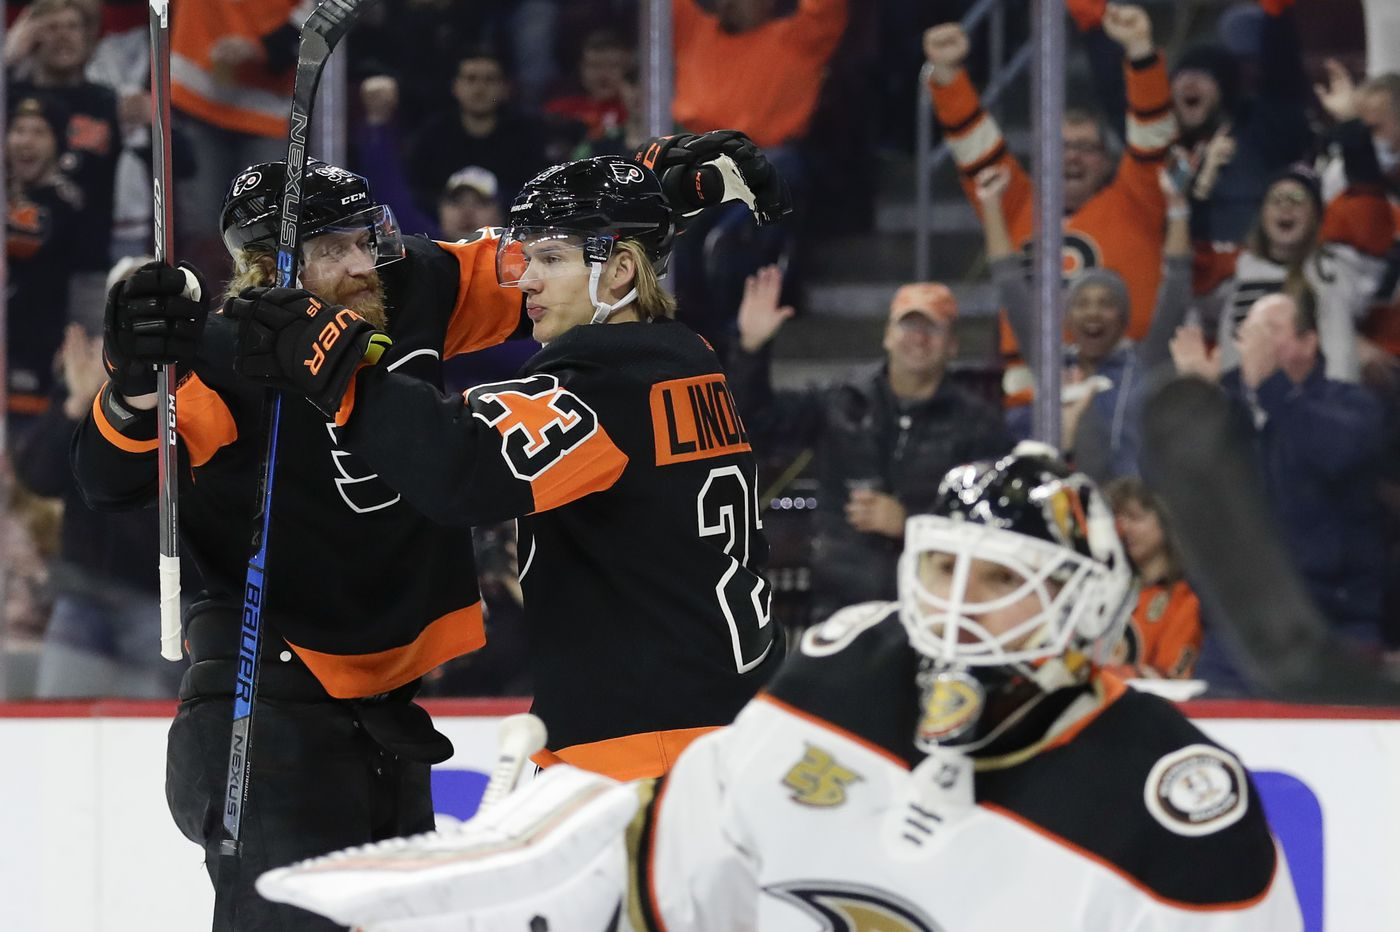 Carter Hart ties rookie record as red-hot Flyers jump Ducks